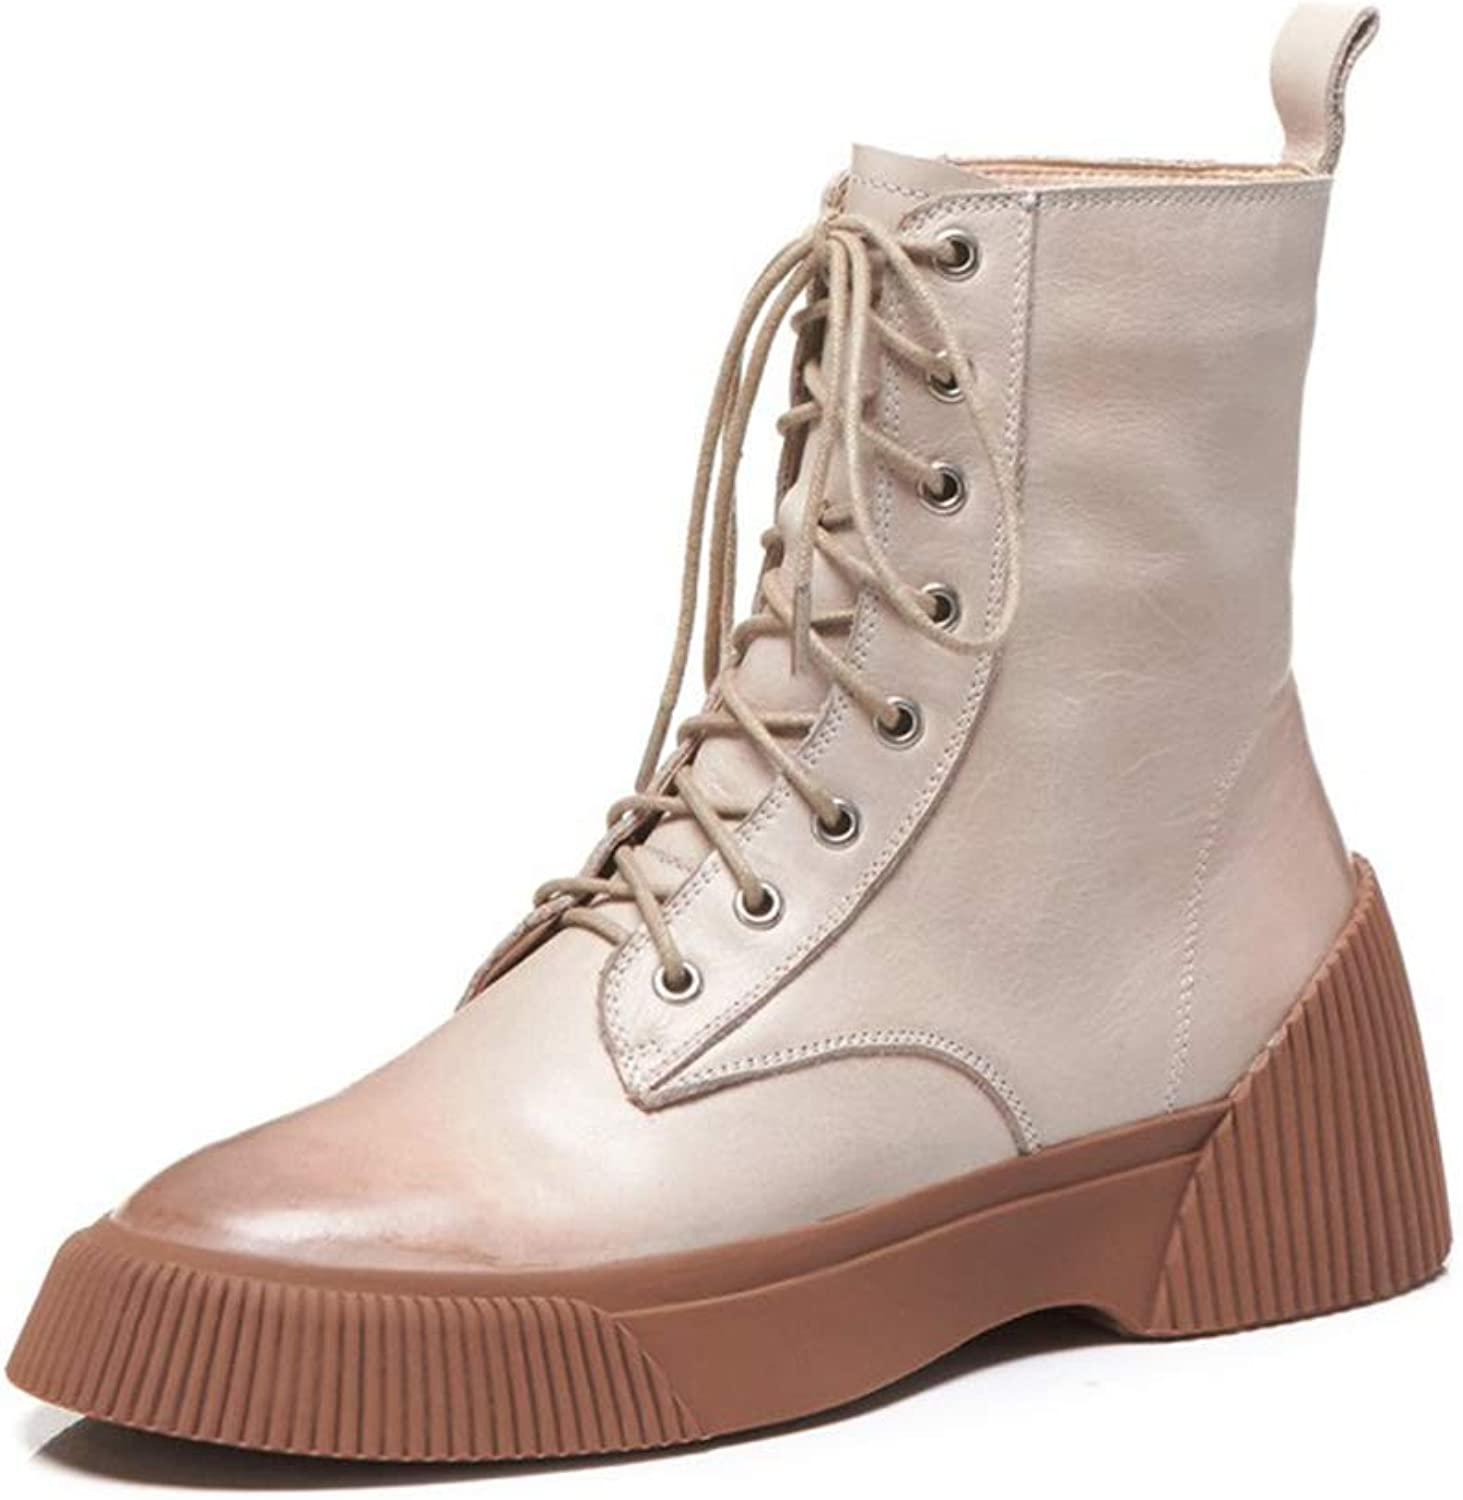 Women's Ankle Boots Leather Fall & Winter Ladies High-top Casual shoes Flat Lace Up Zip Combat Military Army Casual Walking shoes (color   B, Size   37)